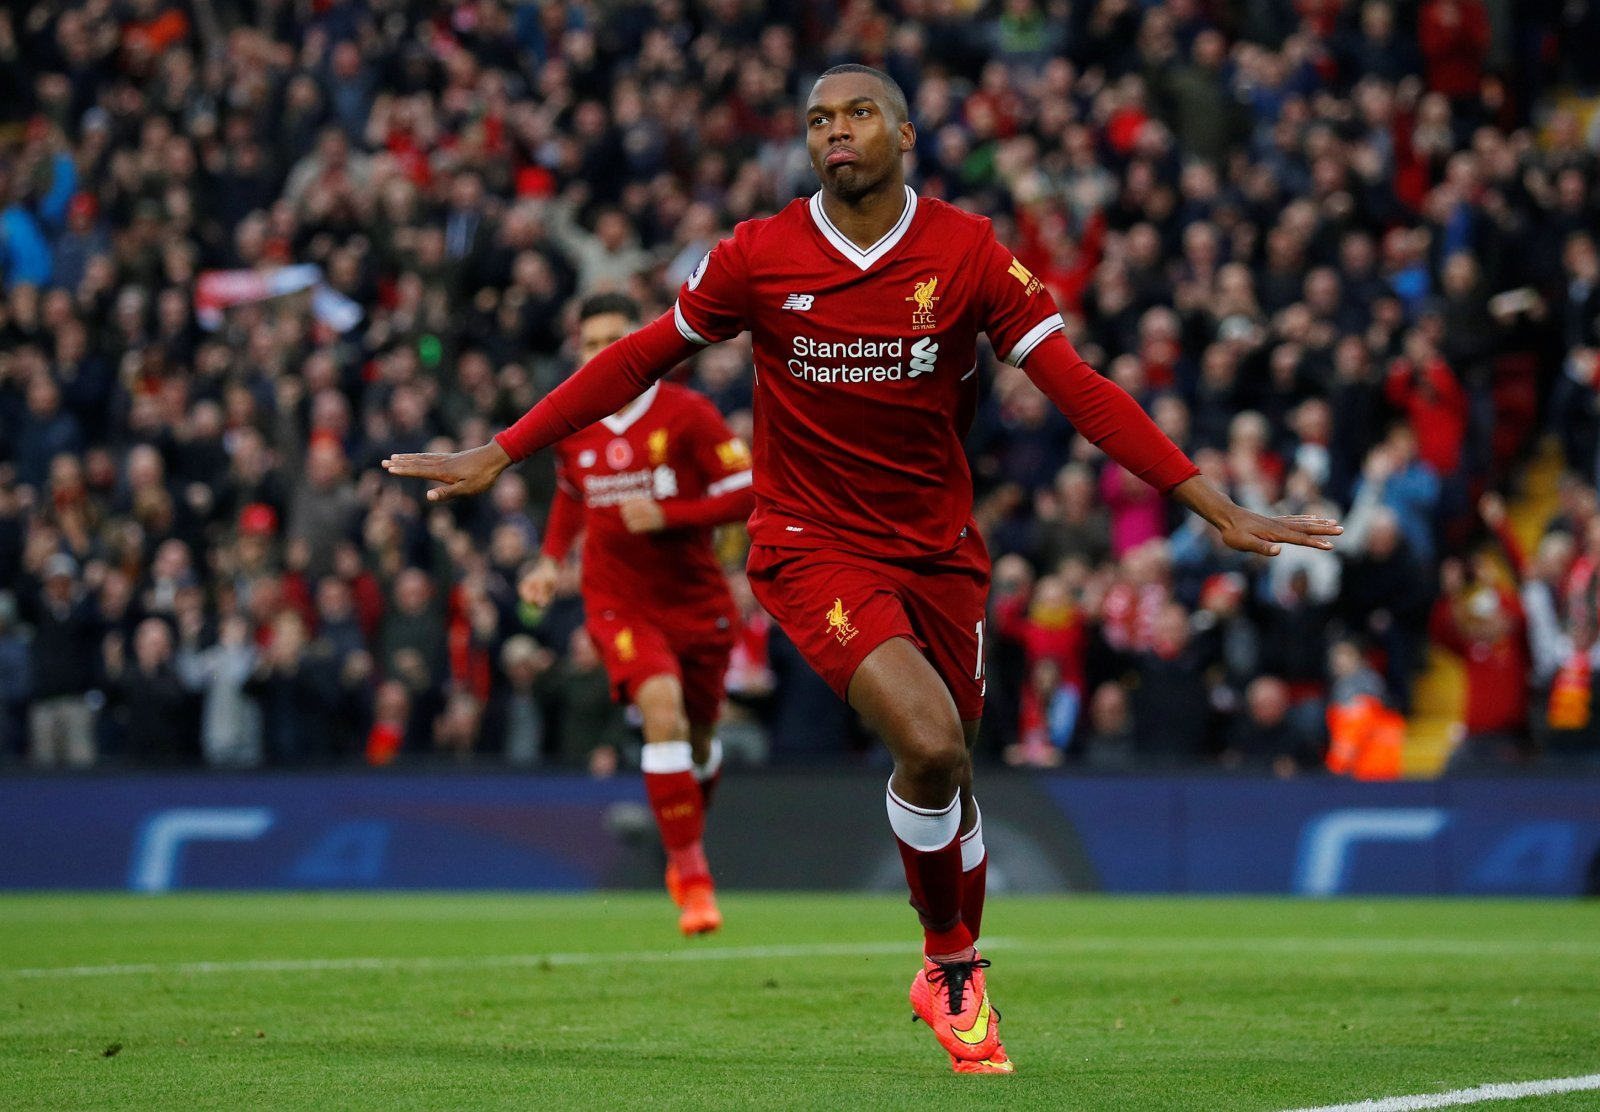 Injury prone Daniel Sturridge could be crucial to Liverpool's title challenge this season